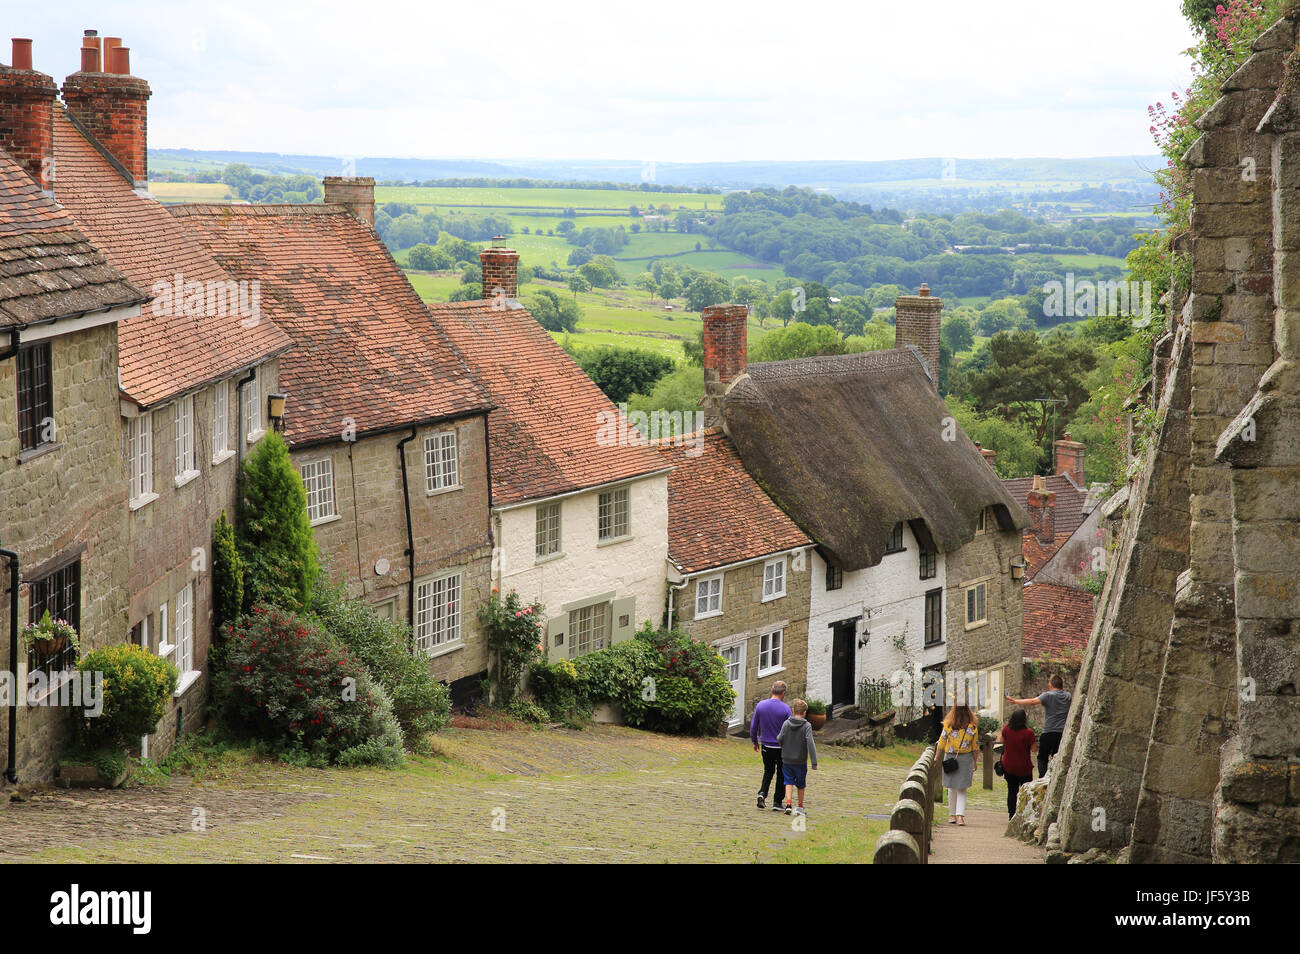 Beautiful Gold Hill, in Shaftesbury, in Dorset, England, UK - Stock Image